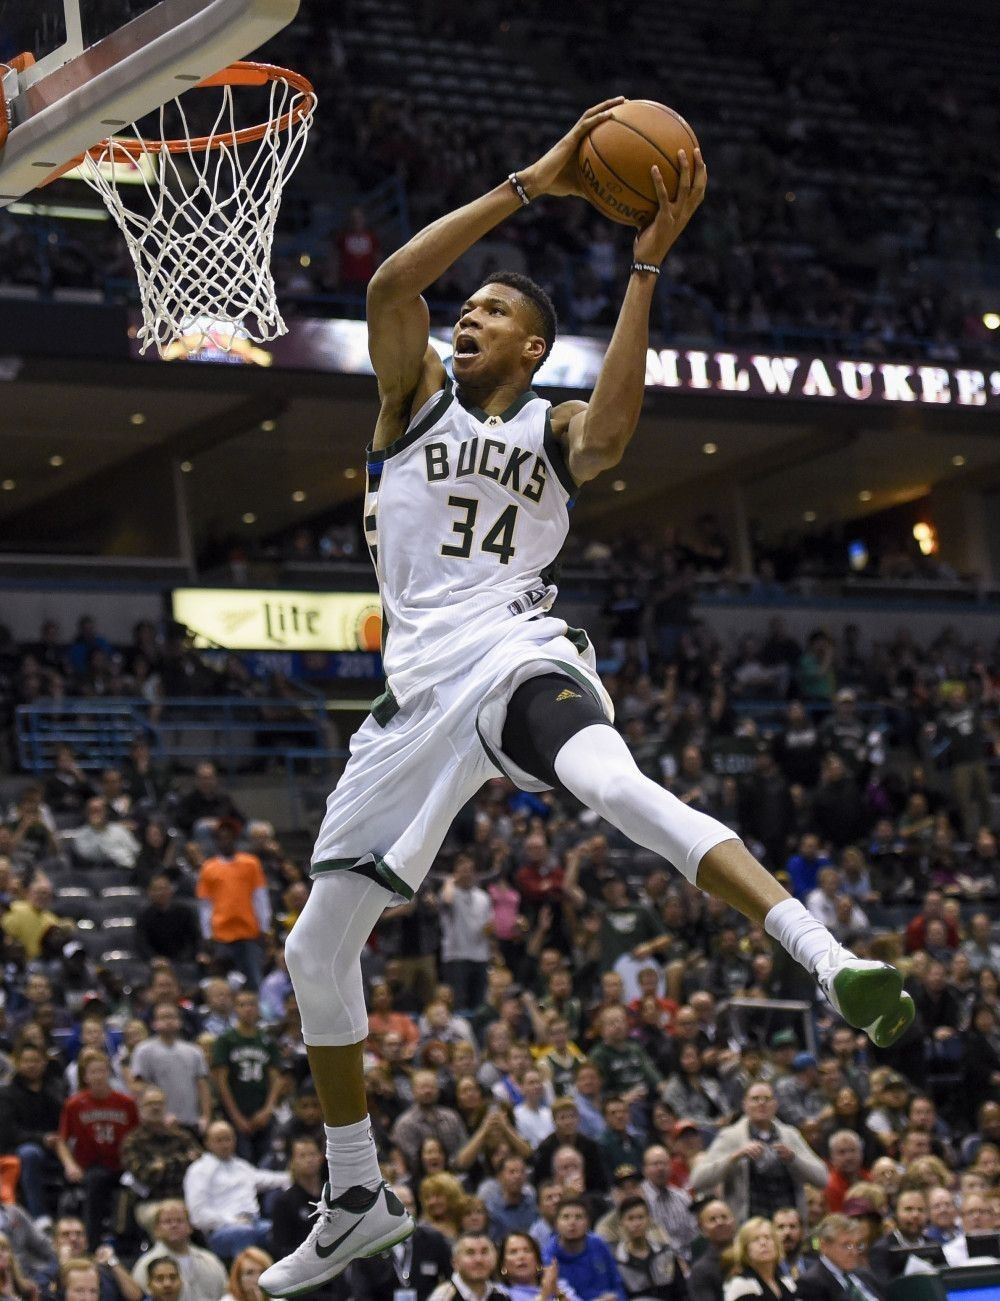 Pin by Glen Polmatier on Milwaukee Bucks (With images